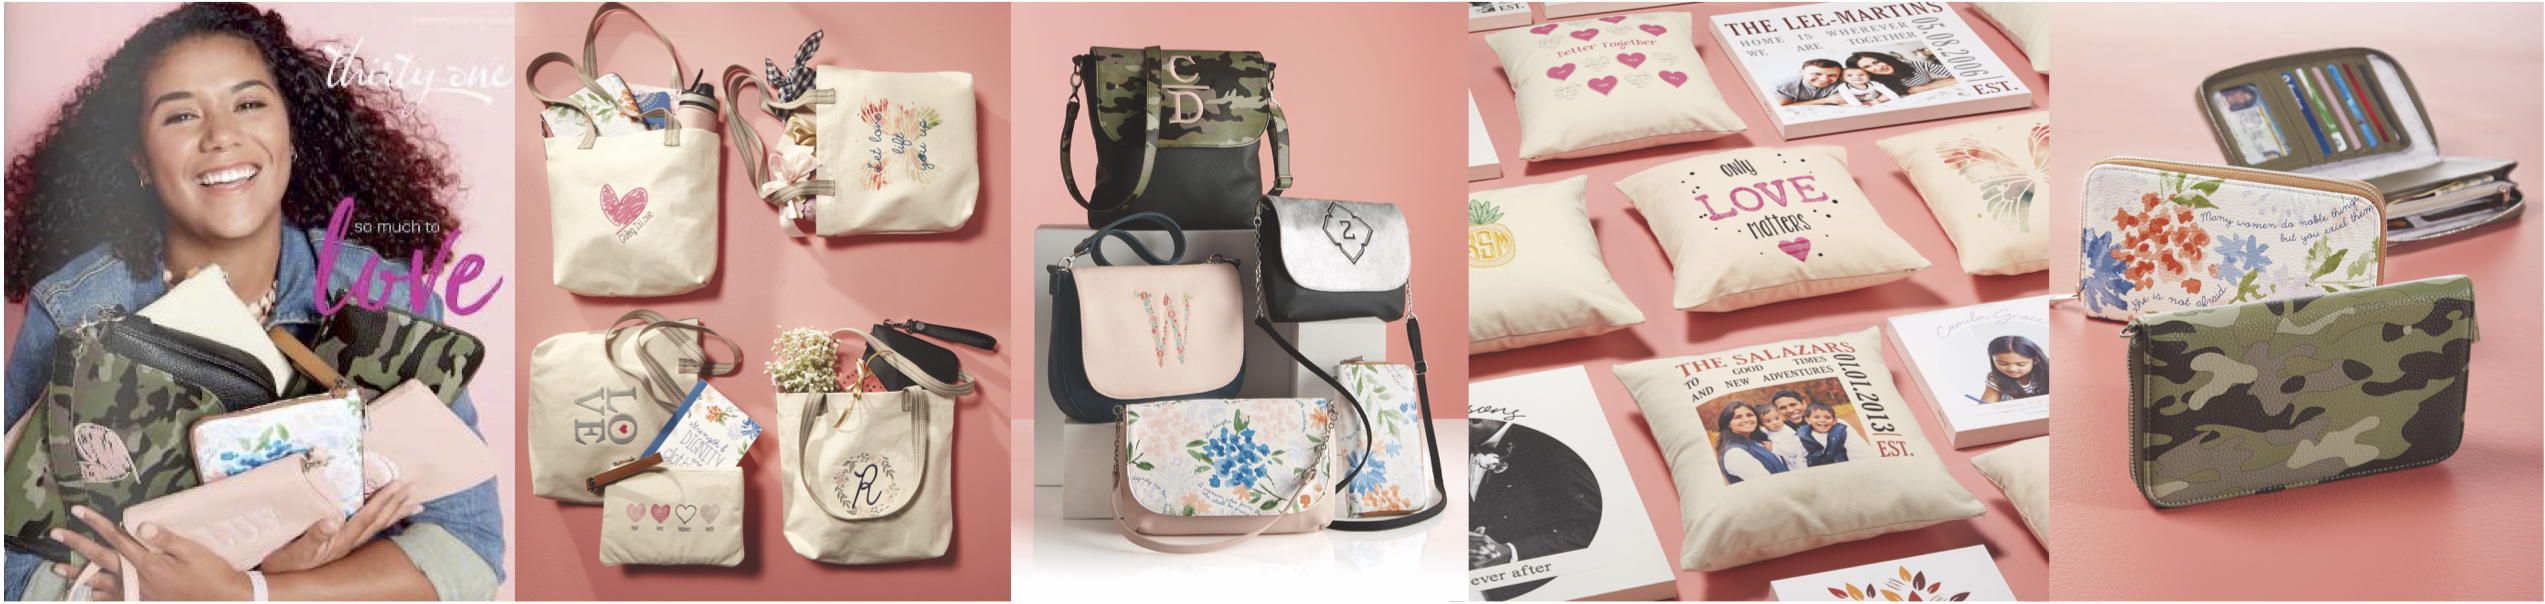 Thirty-One Gifts Winter Guide